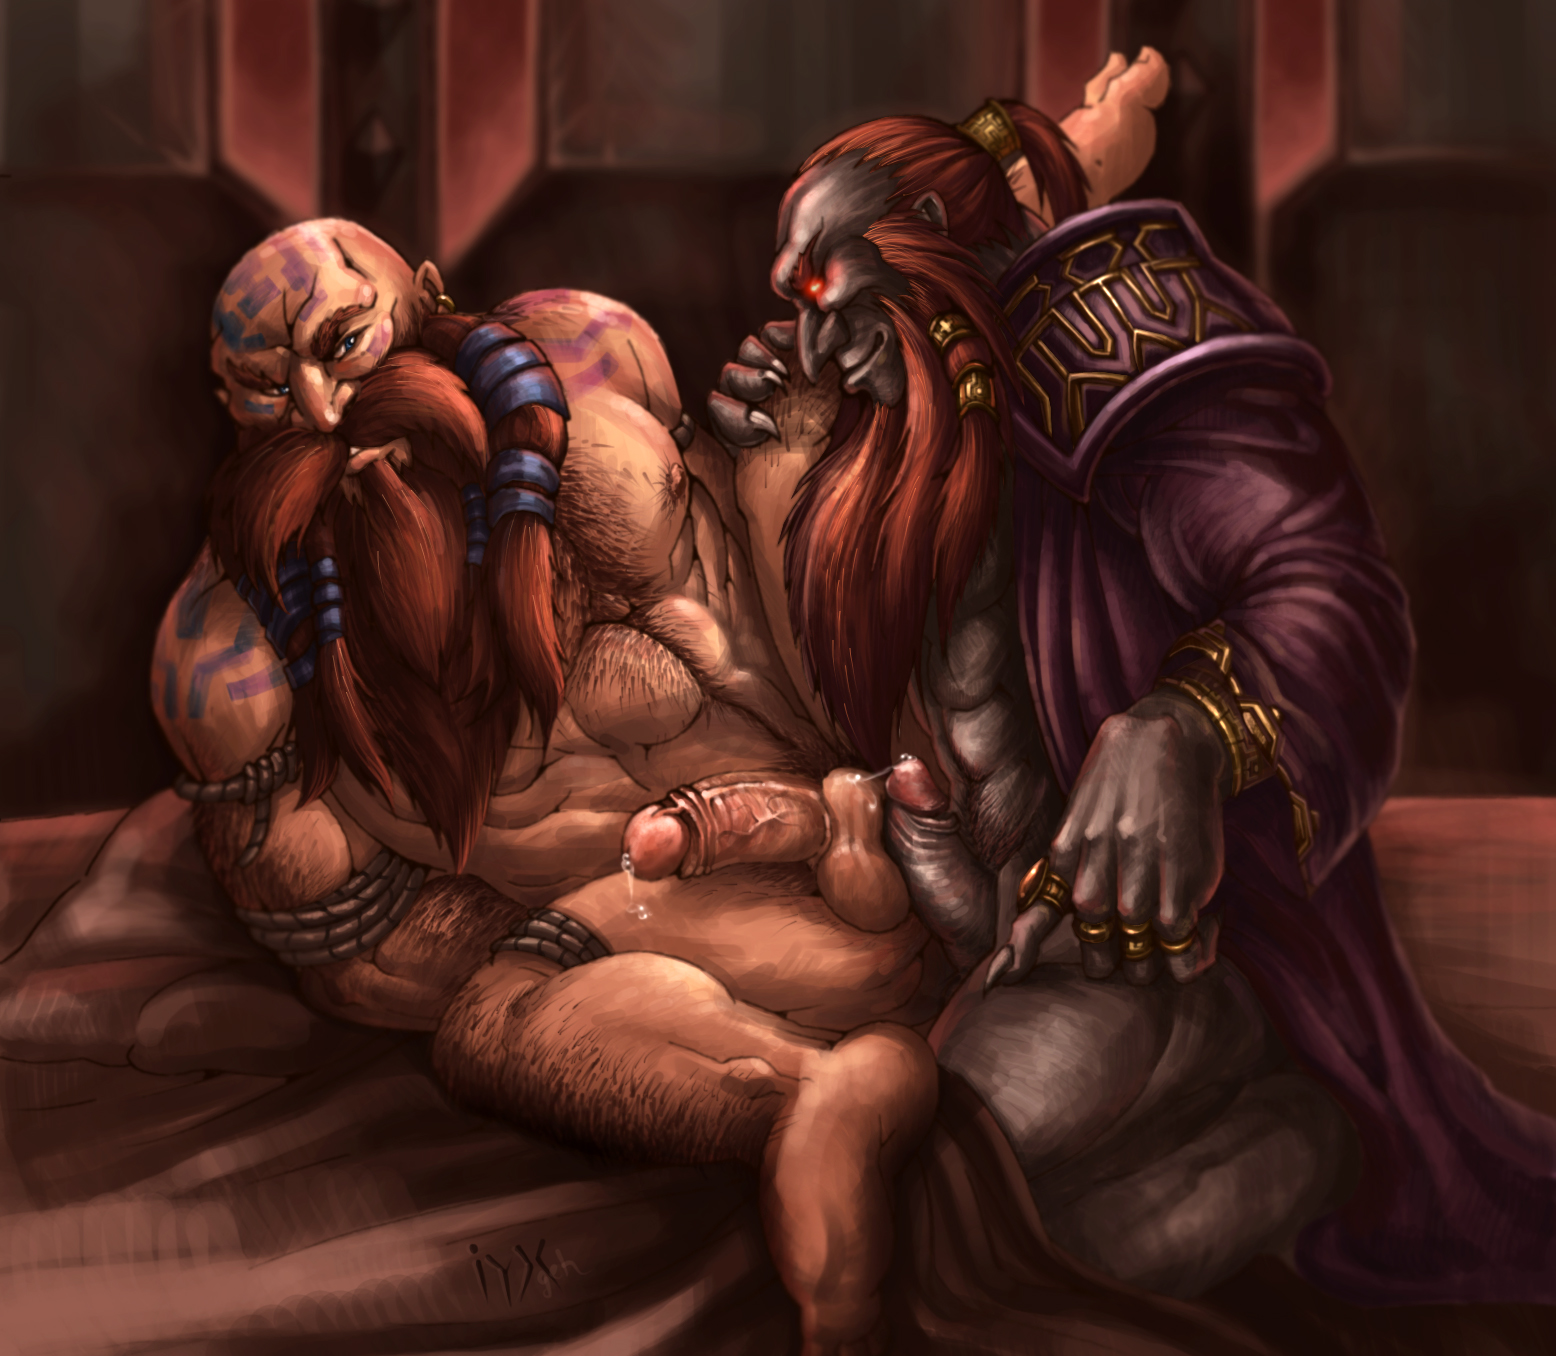 Sex warcraft dwarf nude photo